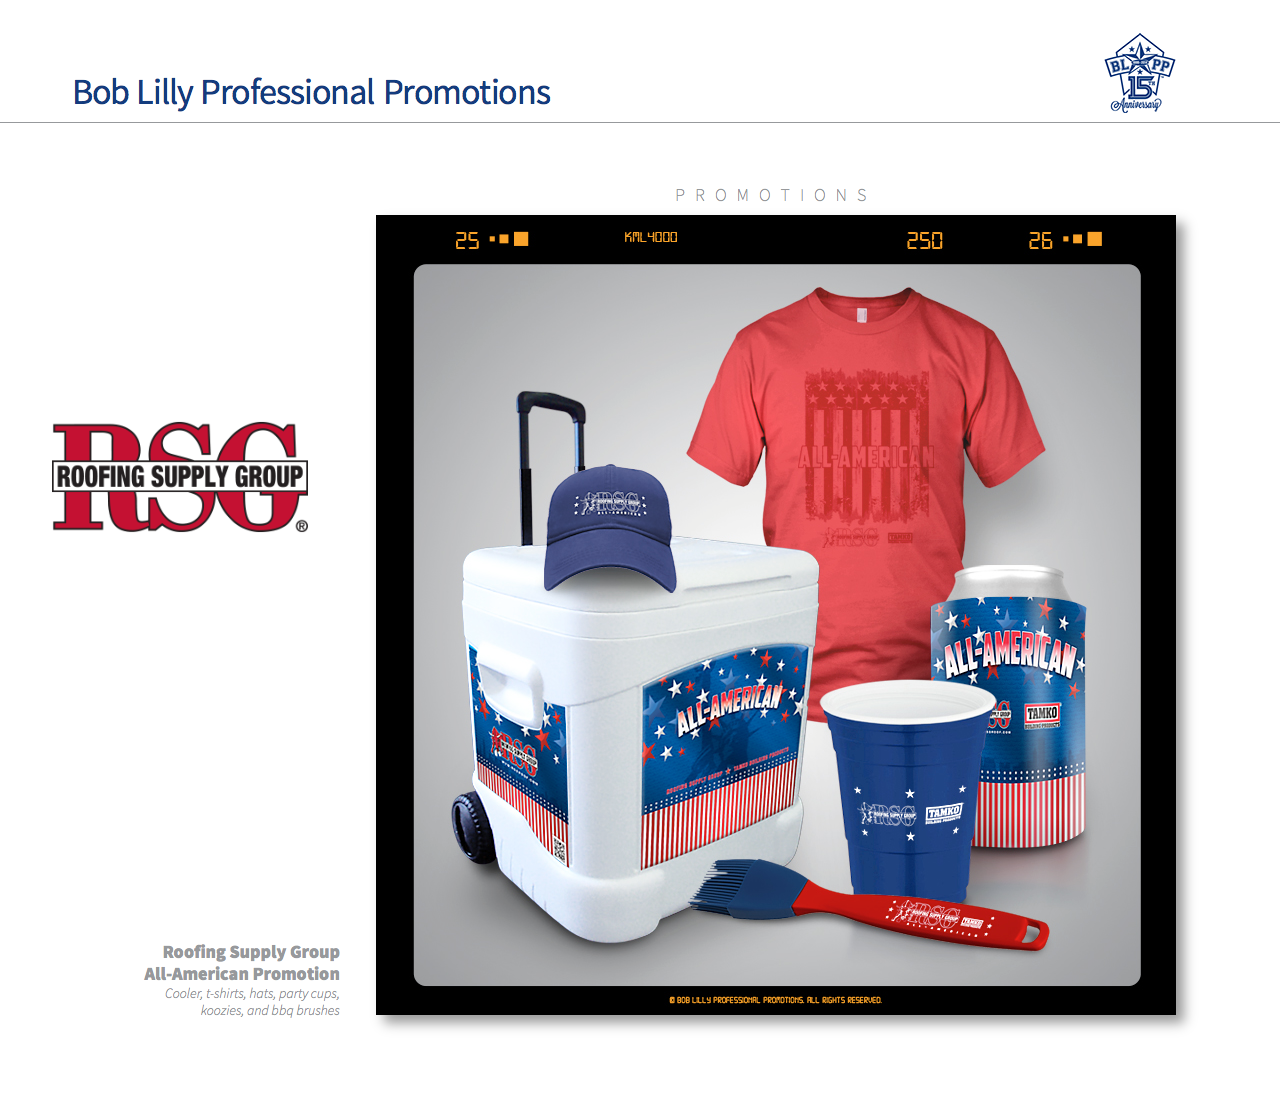 All American Promotion Fro Roofing Supply Group.